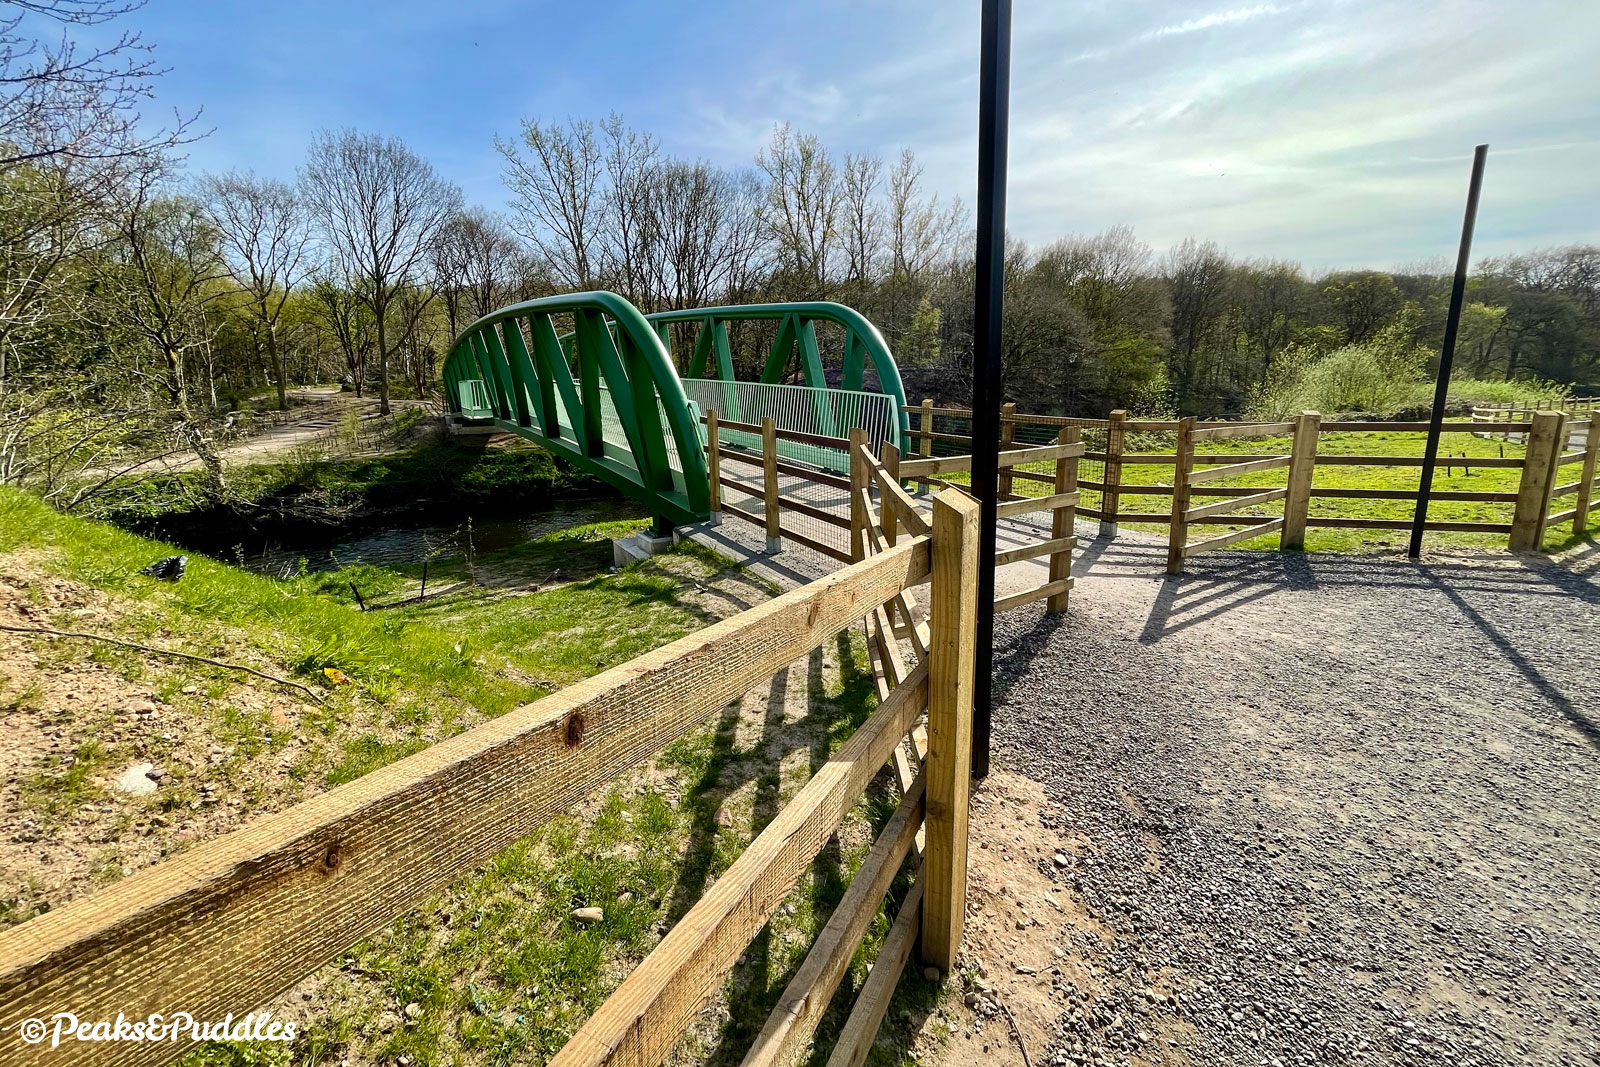 Woodbank Bridge officially opened in late 2020, linking Bredbury and Offerton over the River Goyt via Woodbank Park.